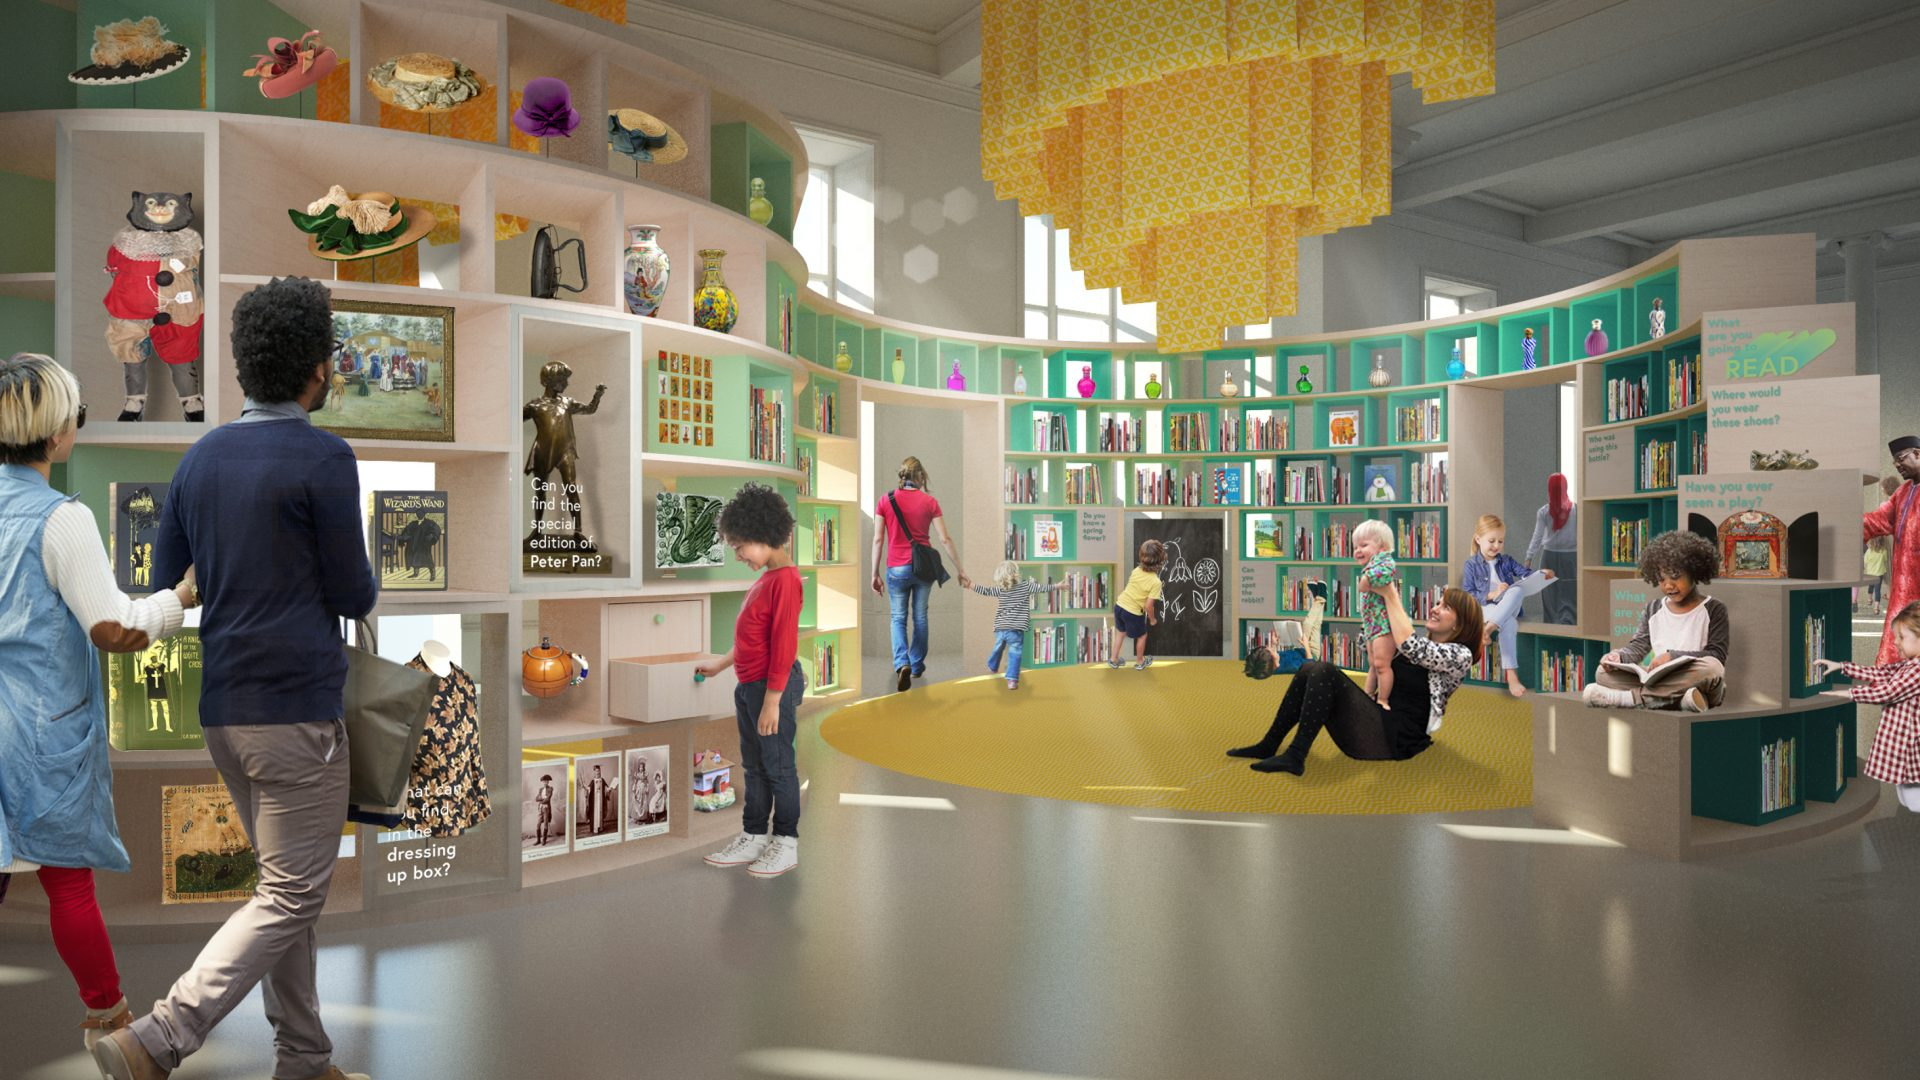 computer generated image of the proposed designs for the Children's library. A colourful space with visitors walking around enjoying the space, looking at artefacts and sitting reading books.